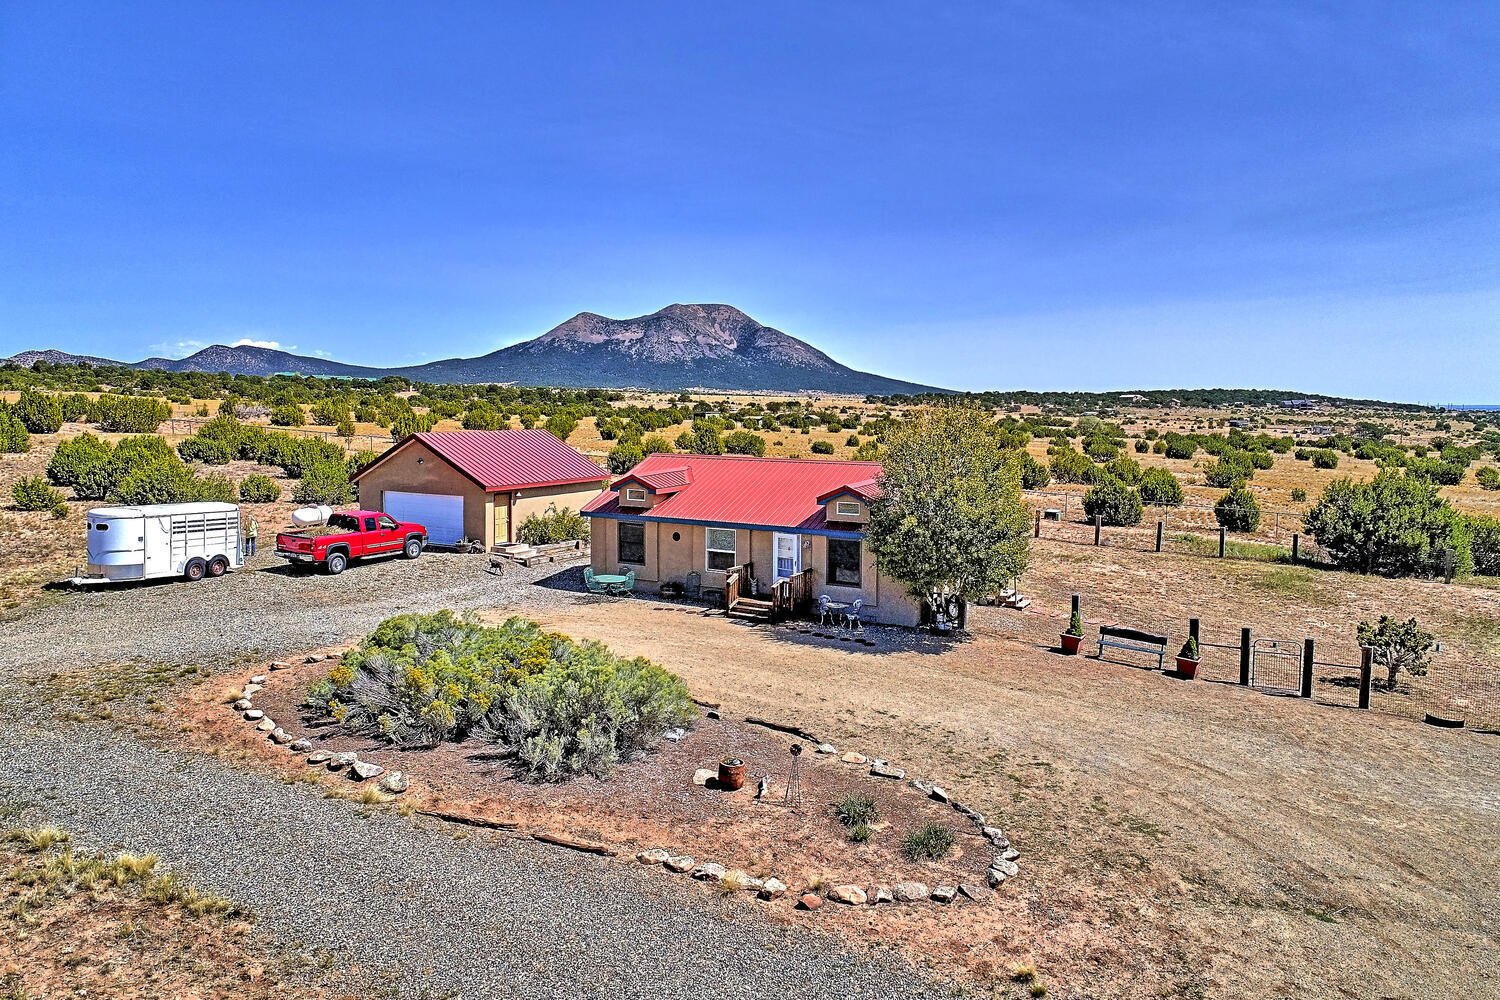 Imagine gorgeous Mountain views, beautiful sunrises and the full moon over South Mountain as you watch your horses or alpacas play on your own 10+acre ranch! Unique equestrian estate with a wonderful home, originally designed as a guest house. Live here while you build your dream home, or keep it simple and live forever in the UPGRADED 1080 SqFt home! This popular open and bright floor plan is Upgraded w/ Stucco finish/Metal roof/Detached 2 car garage/Double insulation for energy efficiency! Wonderful sunny kitchen boasts knotty alder cabinetry! Gas range/breakfast bar/eat in area/French doors! WOW!  70K + in QUALITY HORSE facilities! Pipe rail horse fencing/cross fencing/gates! 36x48 Castlebrook Barn elec+water! Usable 10 acres of Meadows and trees! Your own Ranch close to ABQ & Santa f